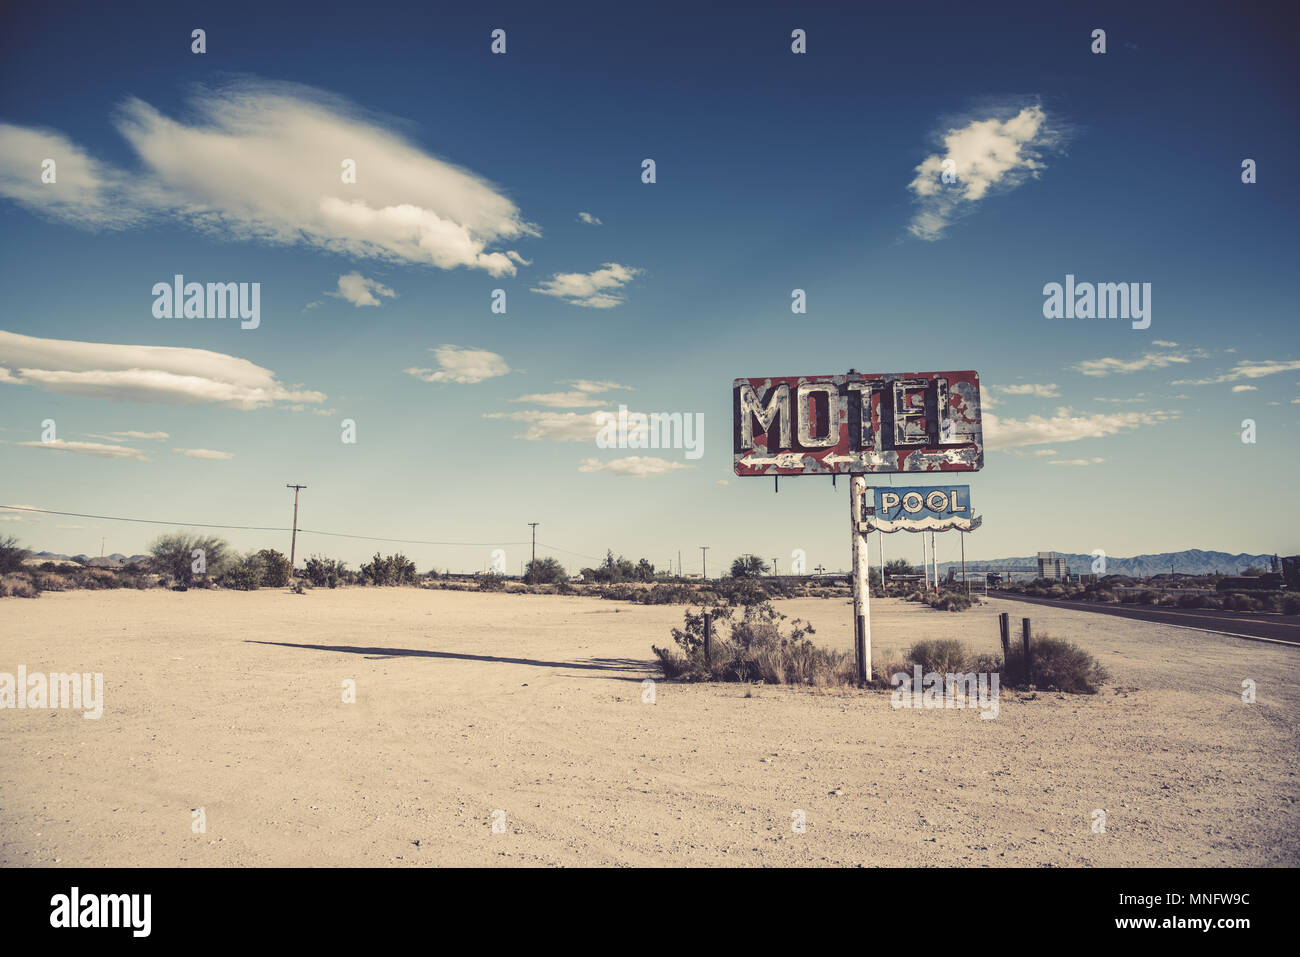 A dilapidated, vintage motel sign in the desert of Arizona - Stock Image